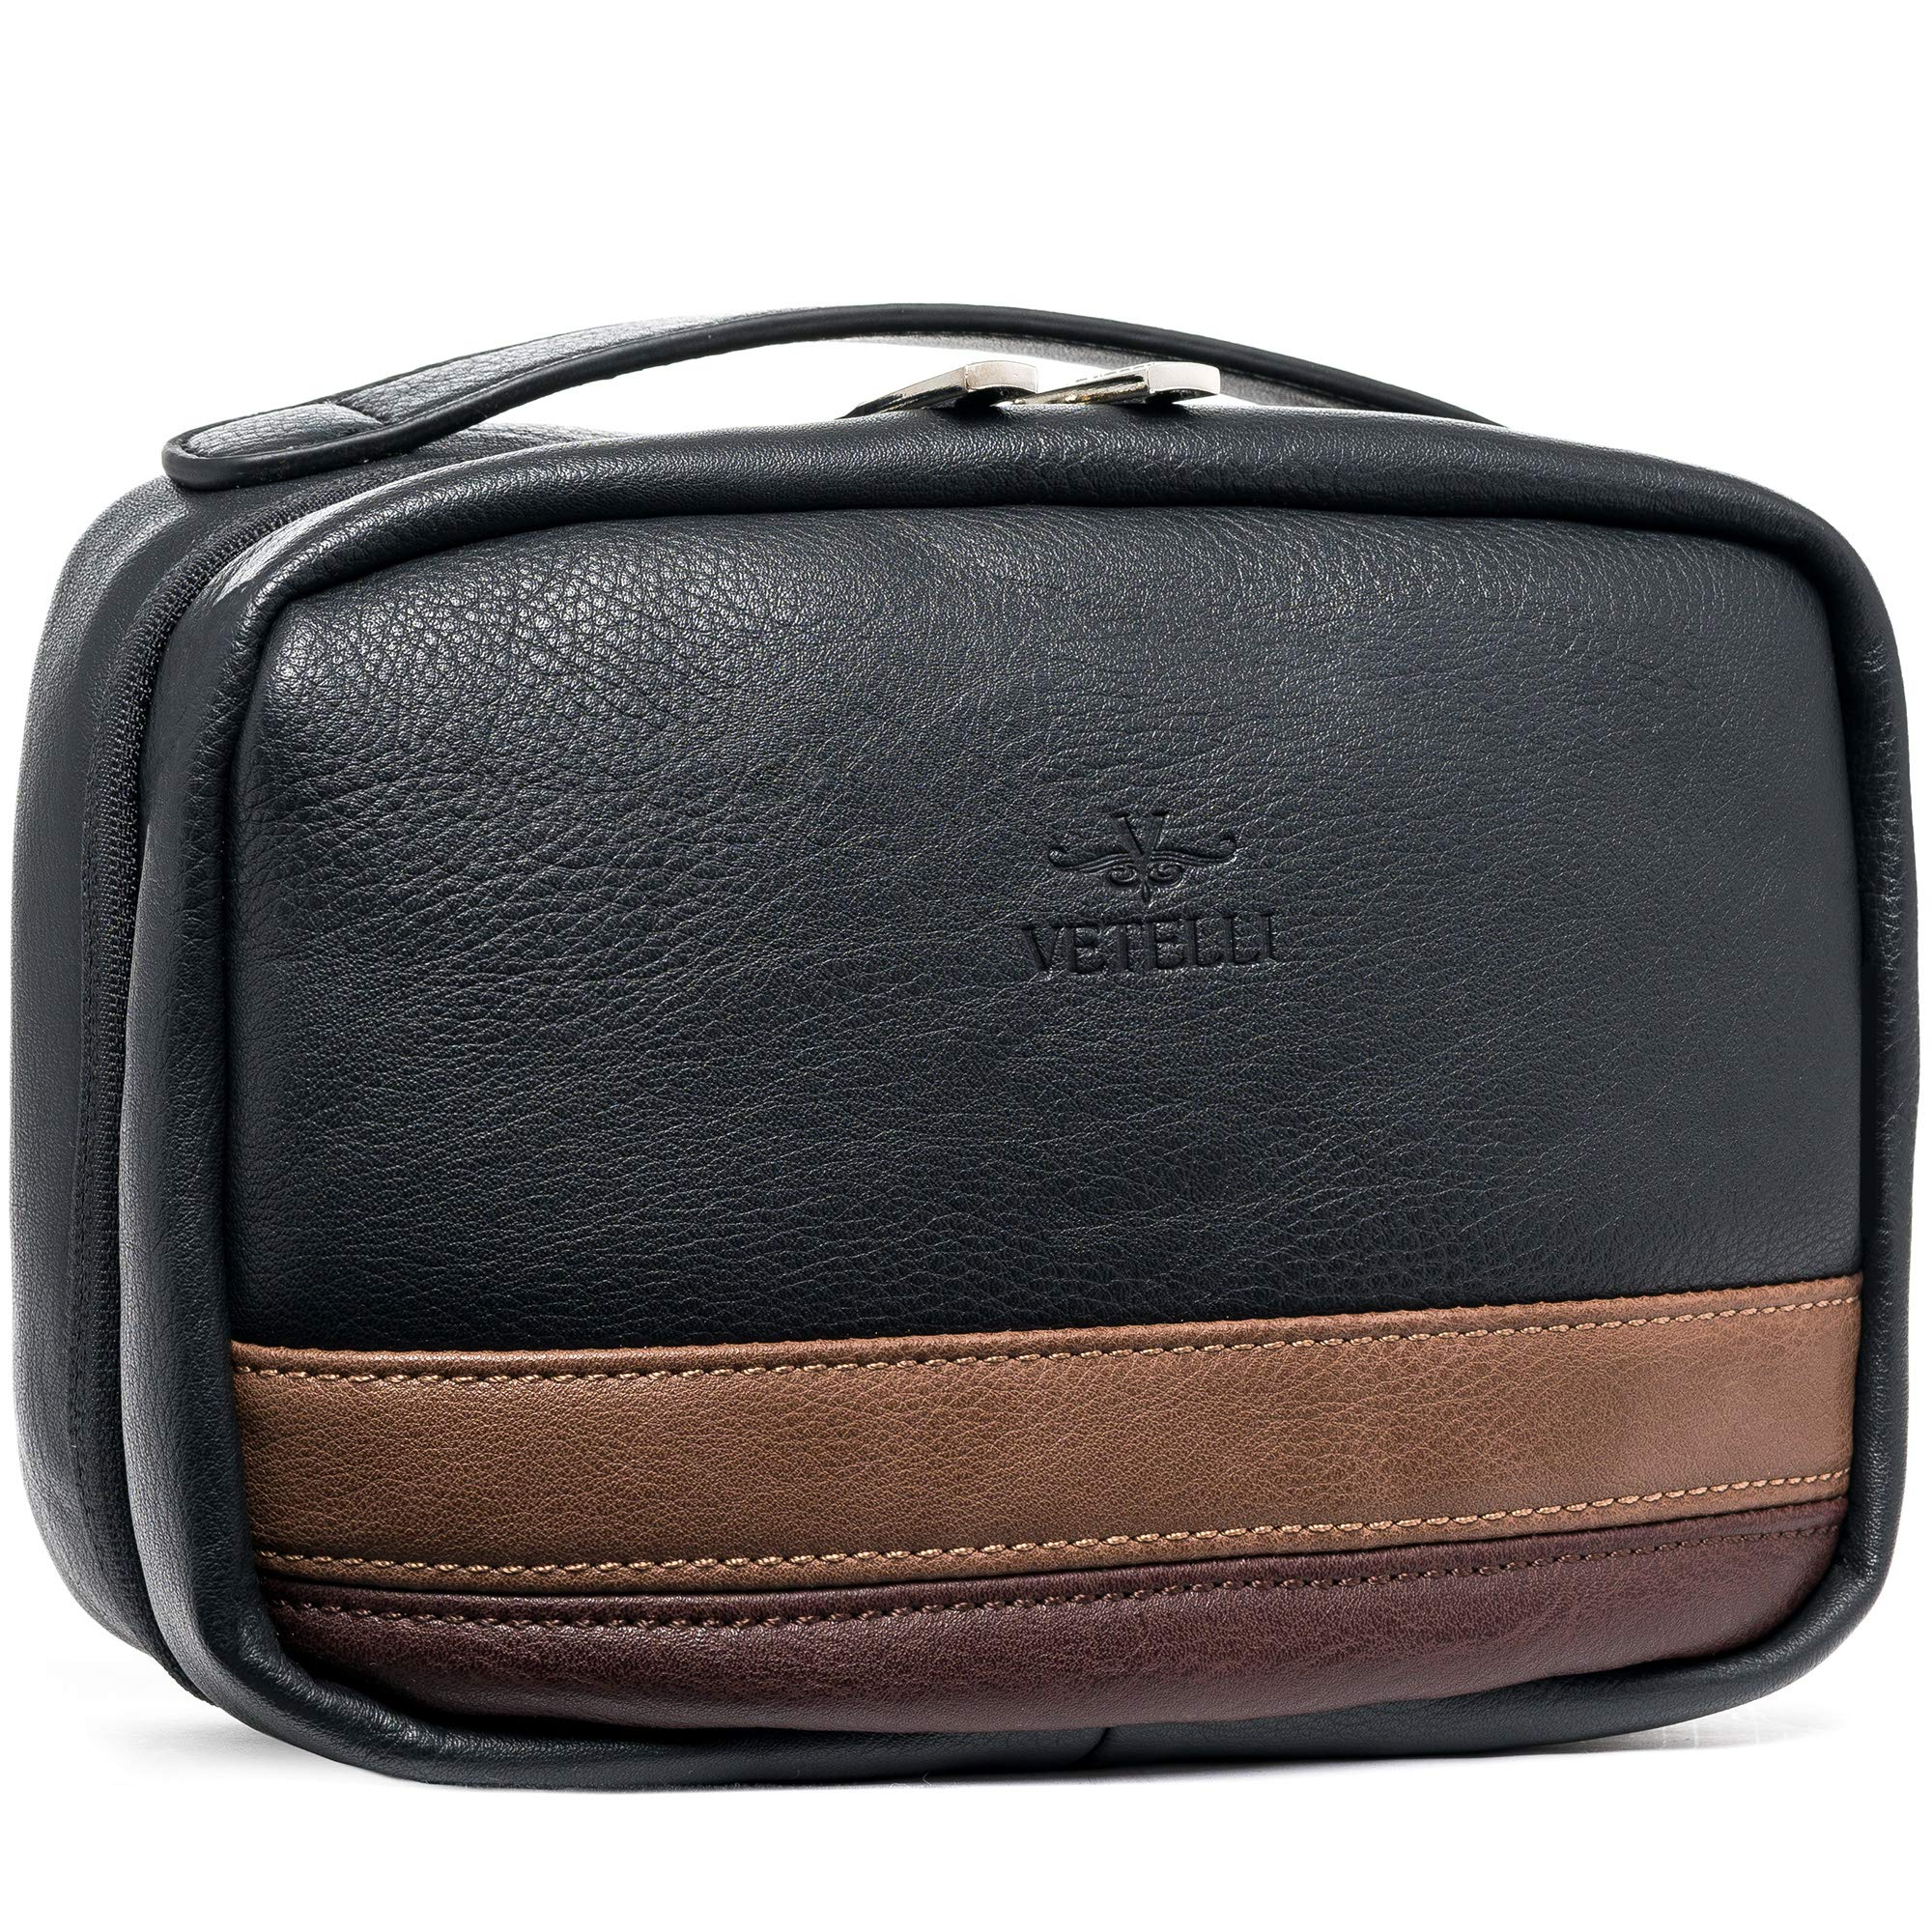 Vetelli Hanging Toiletry Bag for Men - Dopp Kit - Perfect bathroom organizer or travel kit for men - A wonderful gift for the man in your life and a perfect travel accessory. by Vetelli